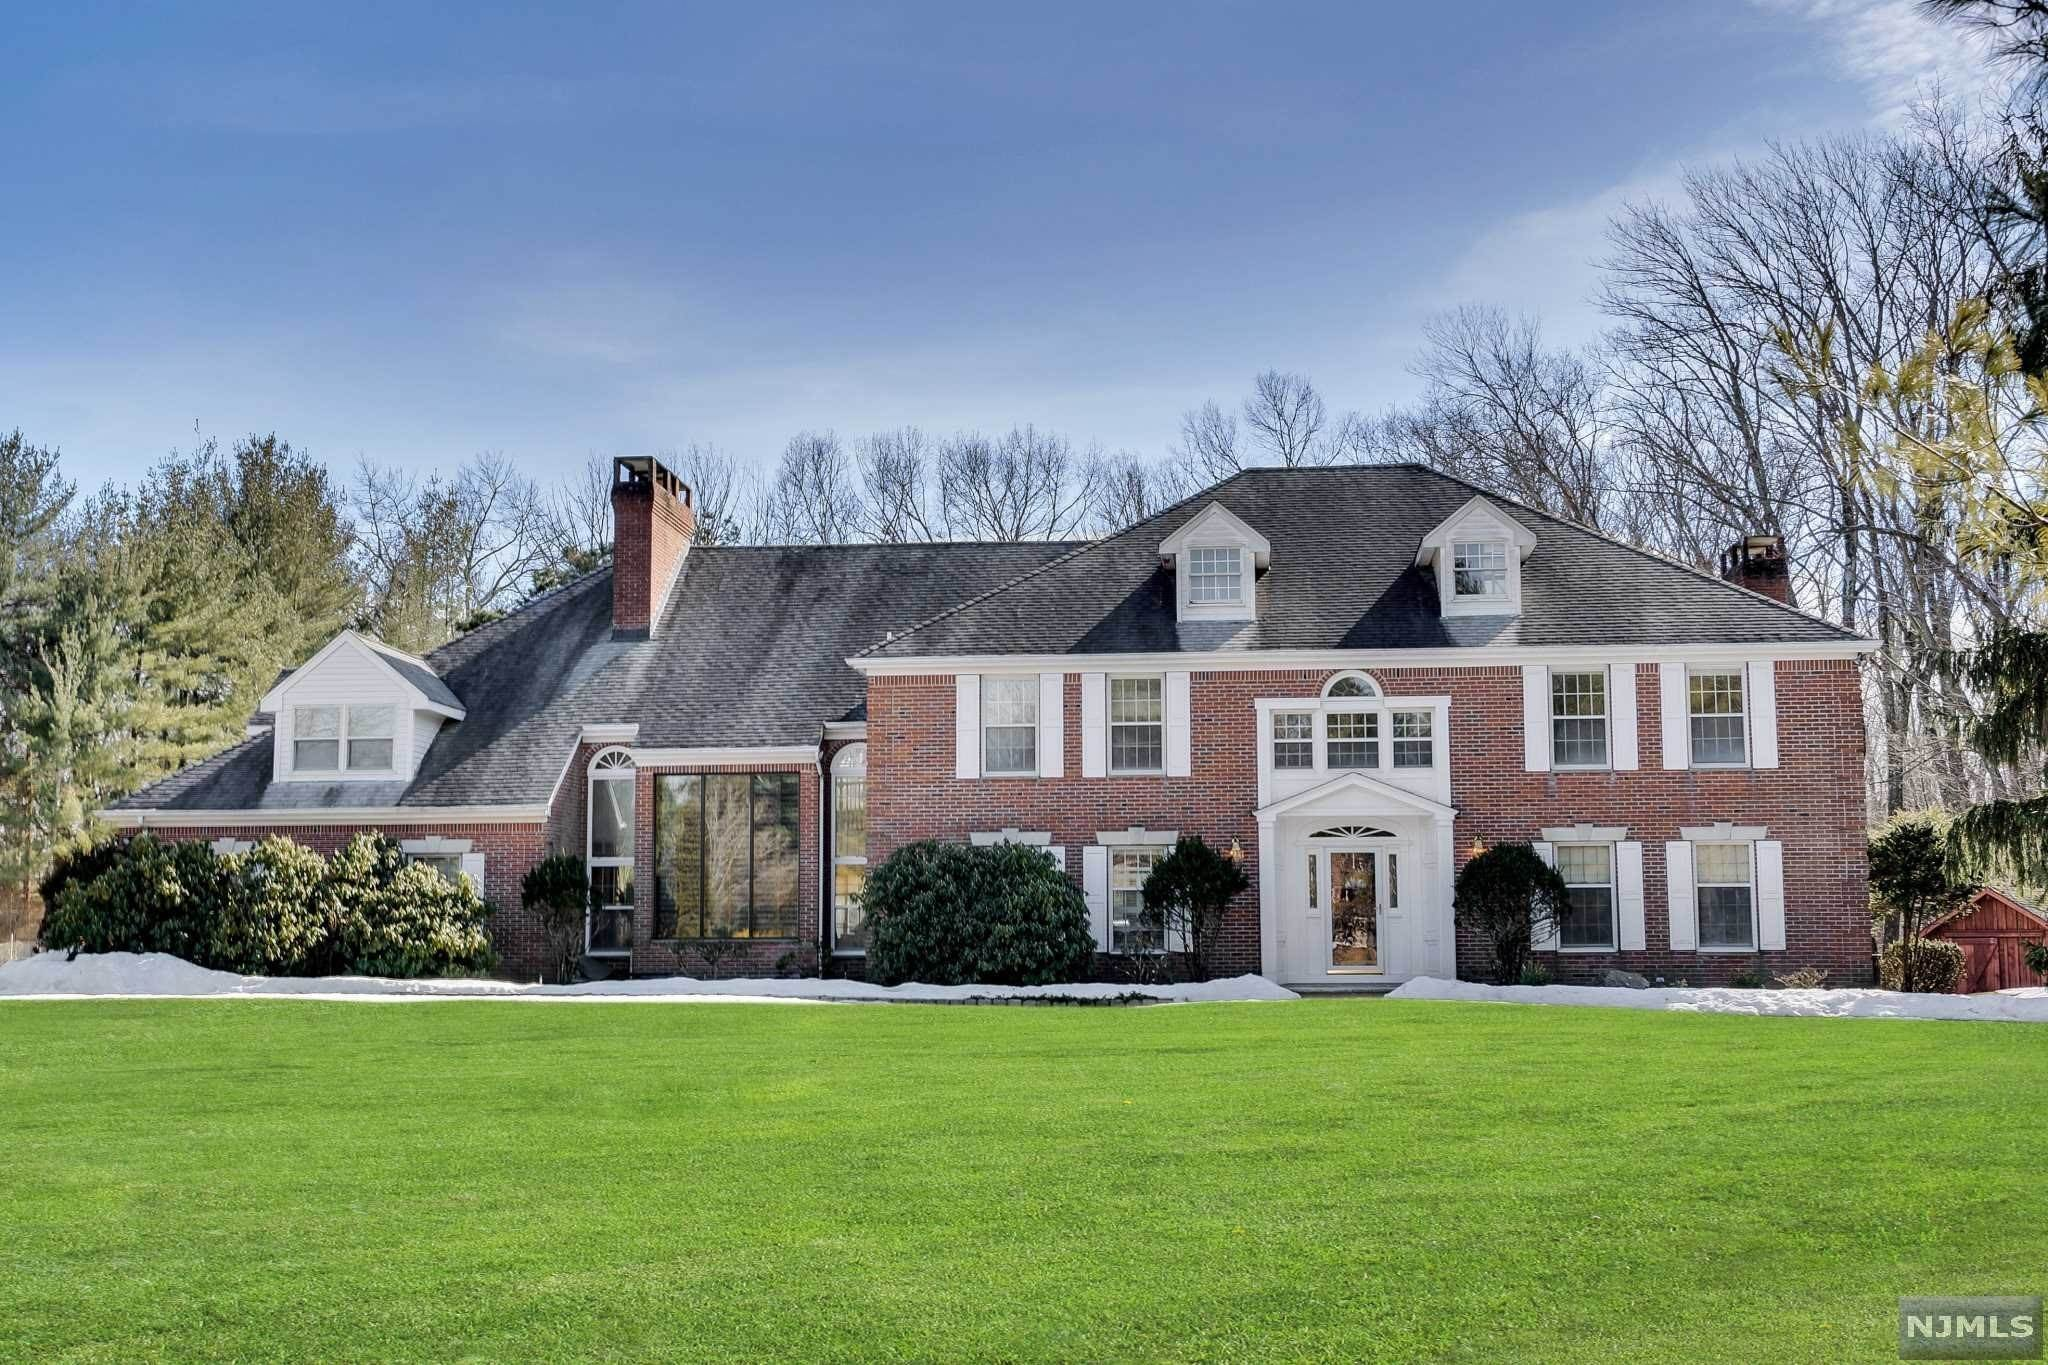 Single Family Home for Sale at 10 Eckert Farm Road Saddle River, New Jersey, 07458 United States